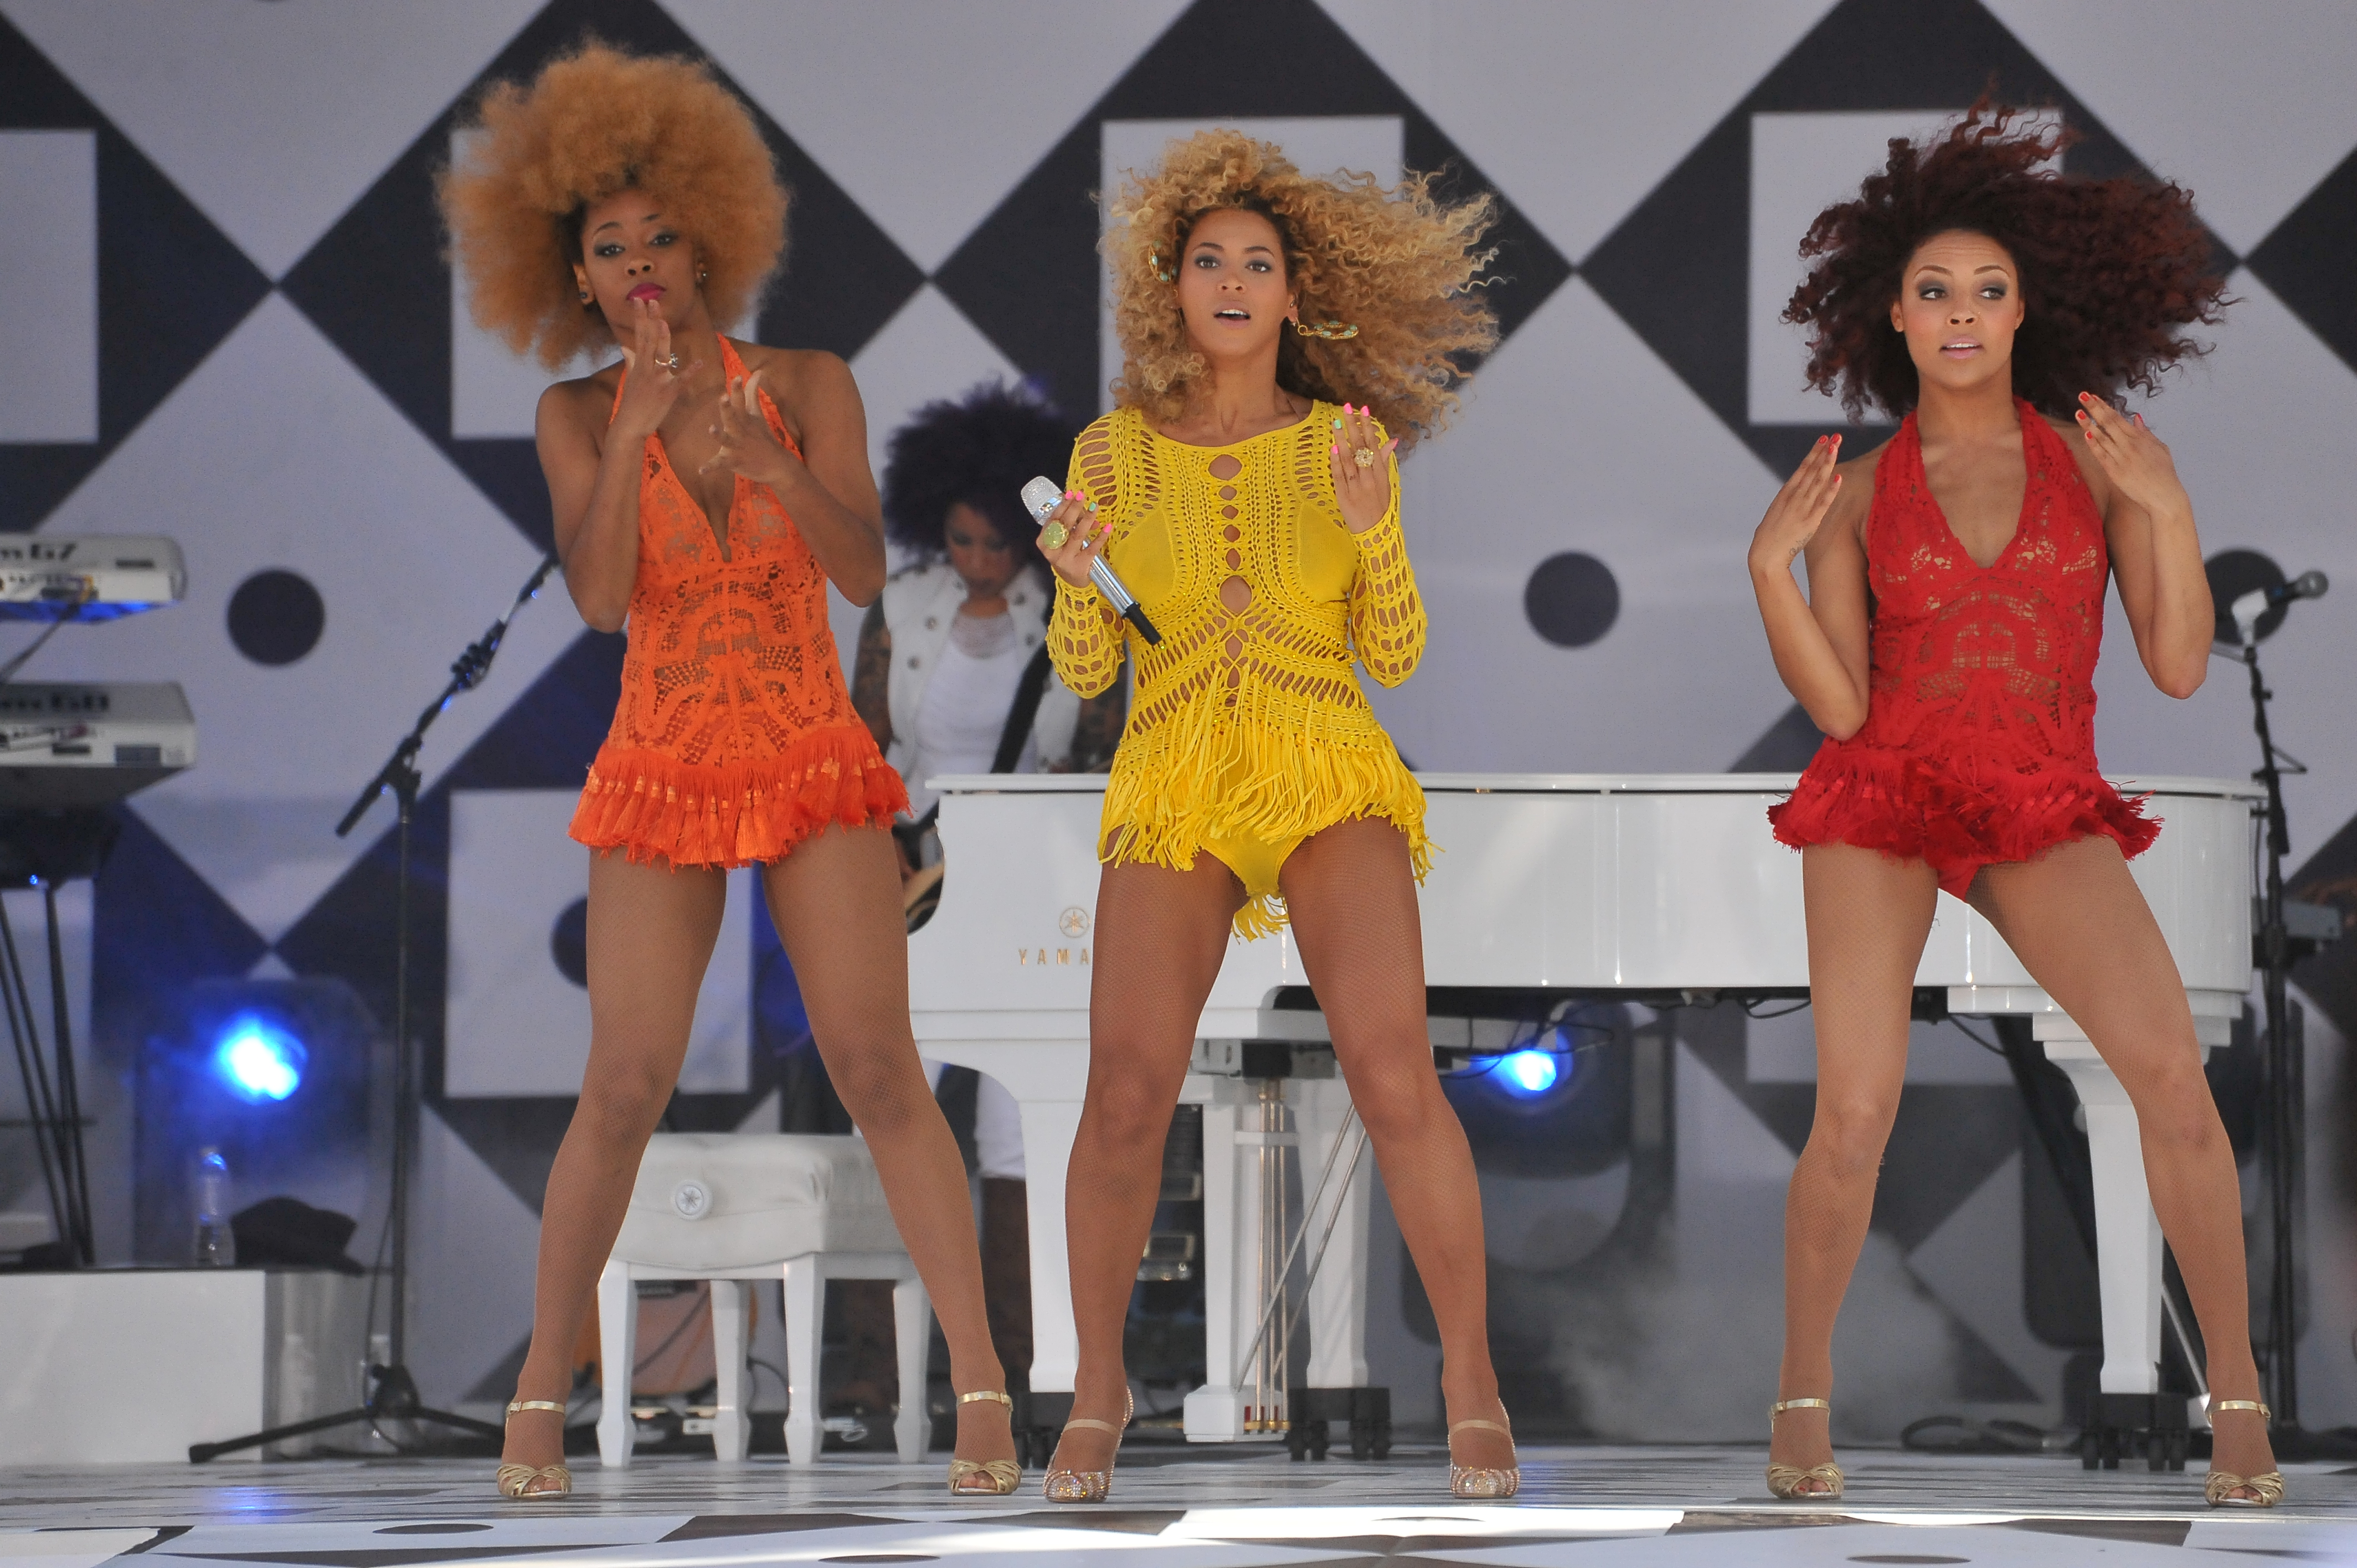 Beyonce videos single ladies put ring Videos de beyonce single ladies en vivo - CMA